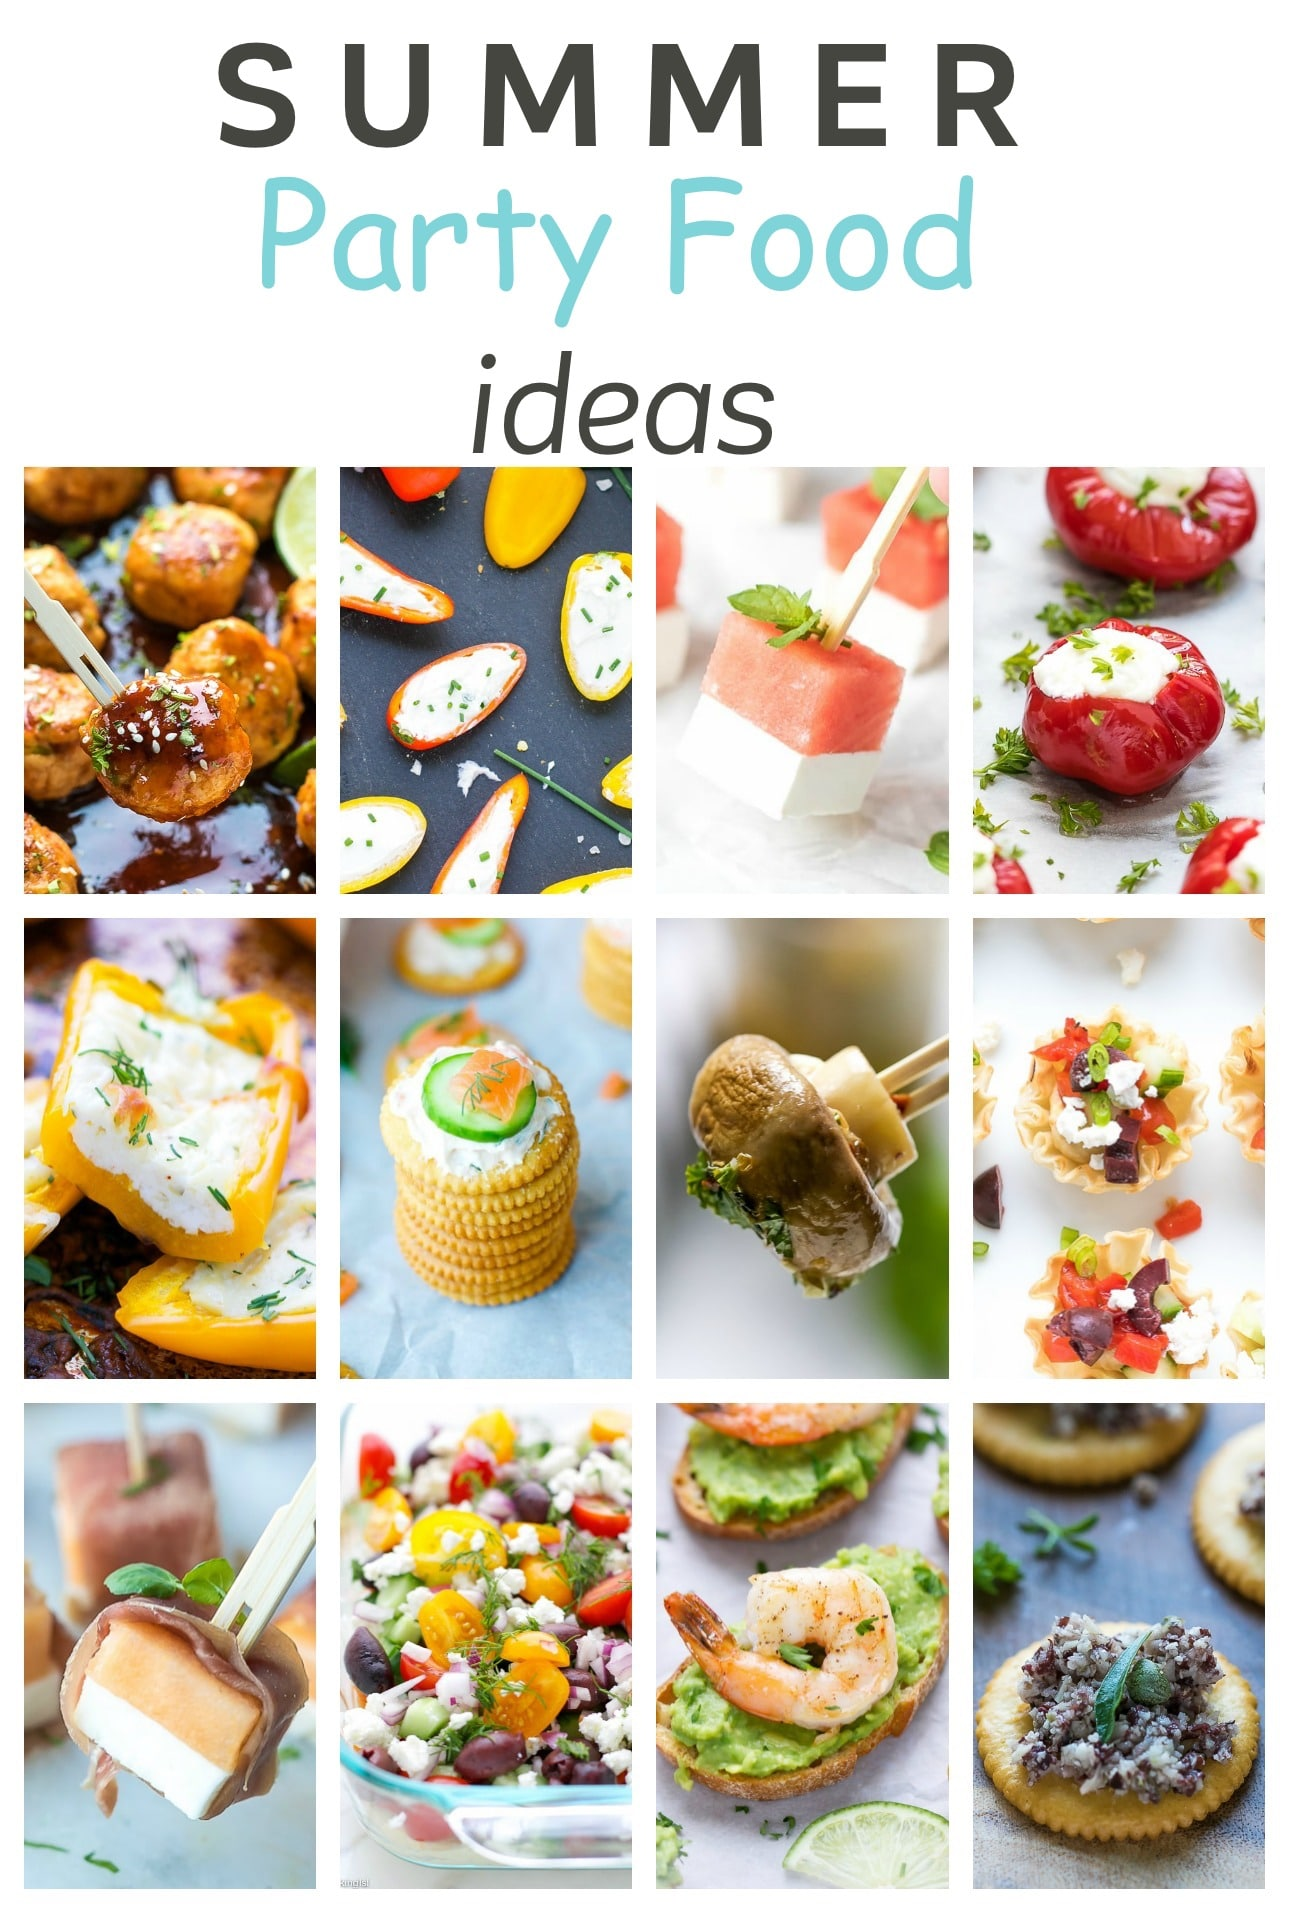 Easy summer party food ideas cooking lsl for Easy food ideas for parties